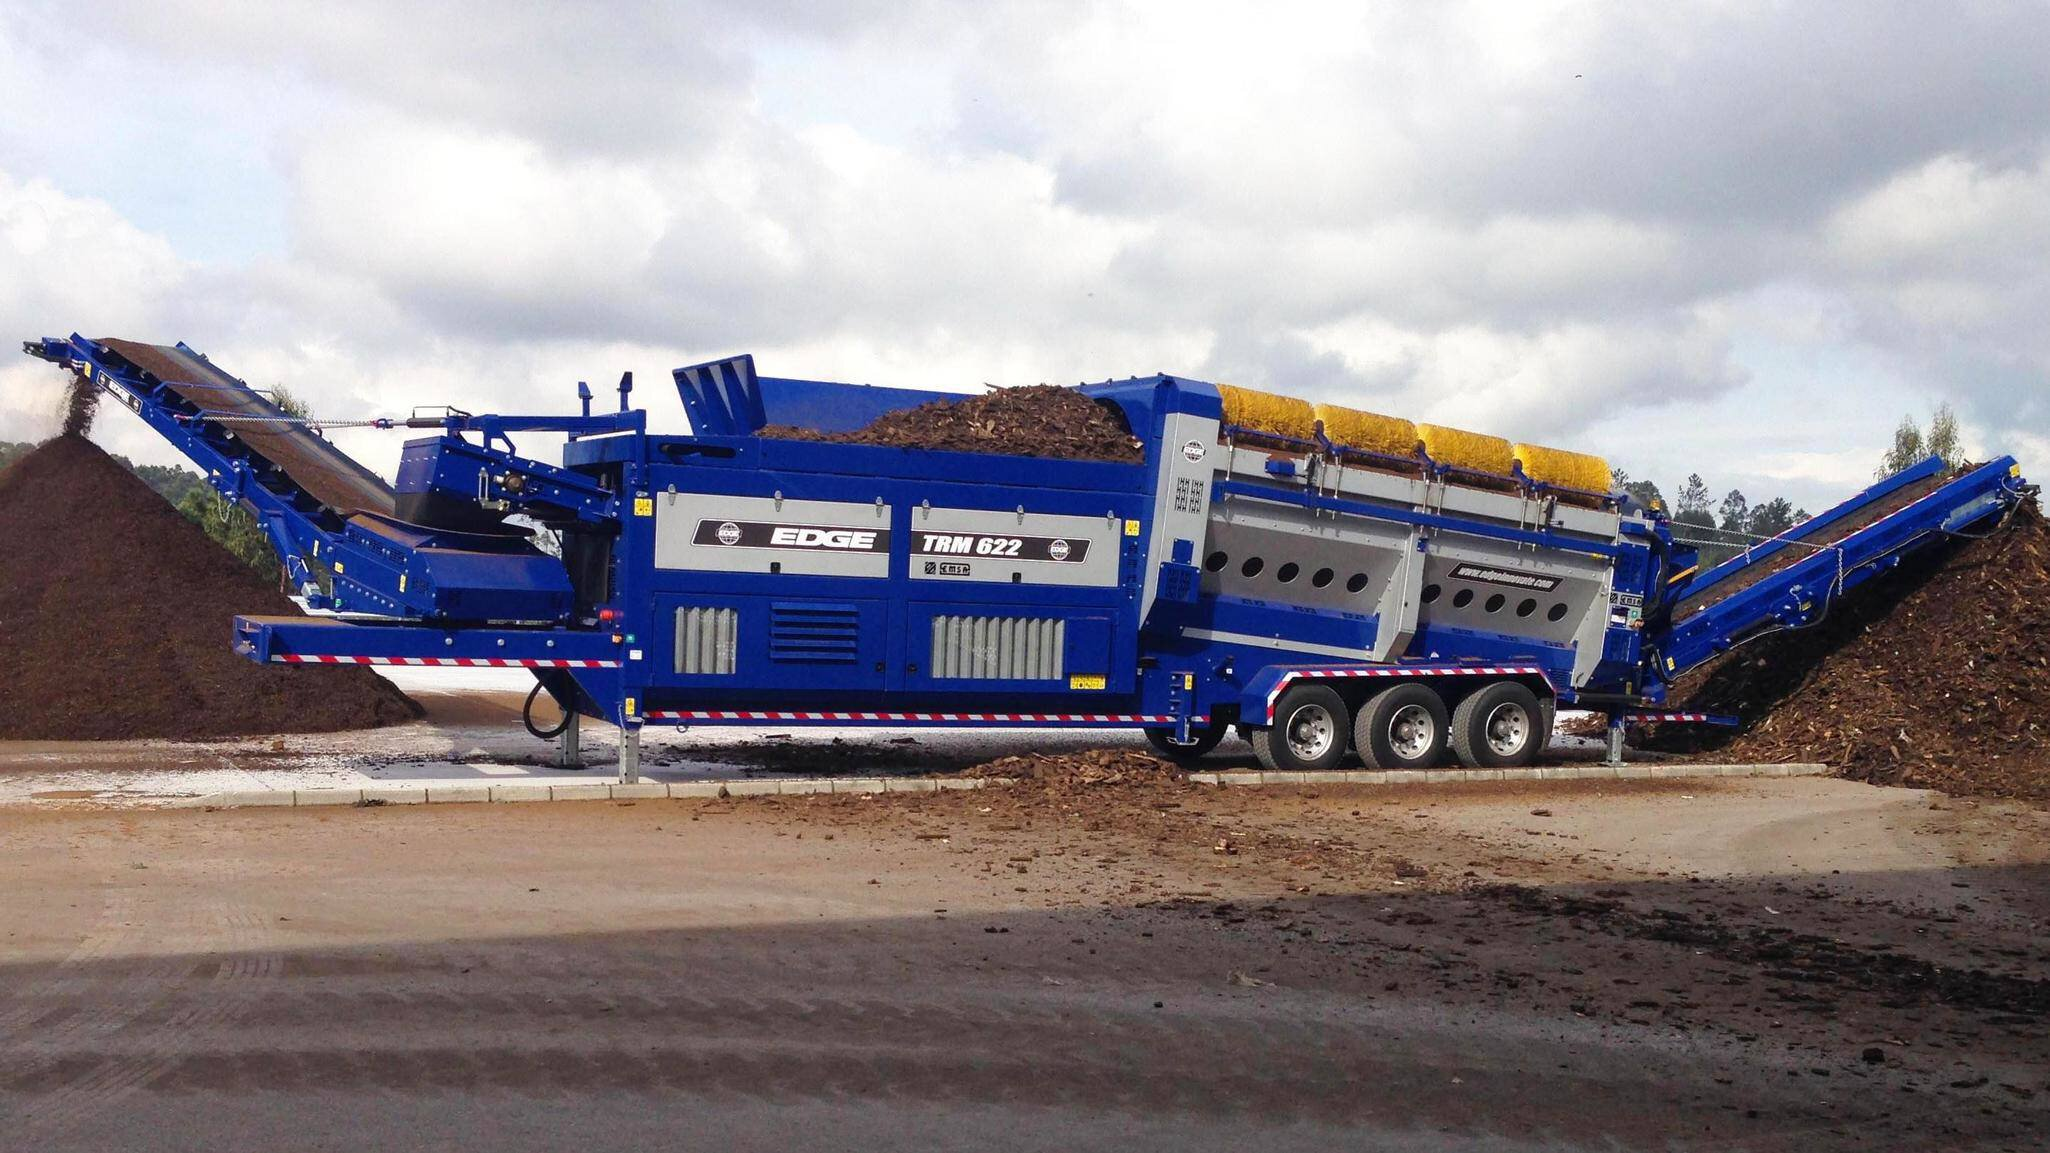 Gallery image 0 - The EDGE TR622 Trommel Range combines high production rates with ease of use in a robust, portable and versatile screening plant that is ideal for applications such as top soil, recycling, composting and is proven in construction and demolition waste.